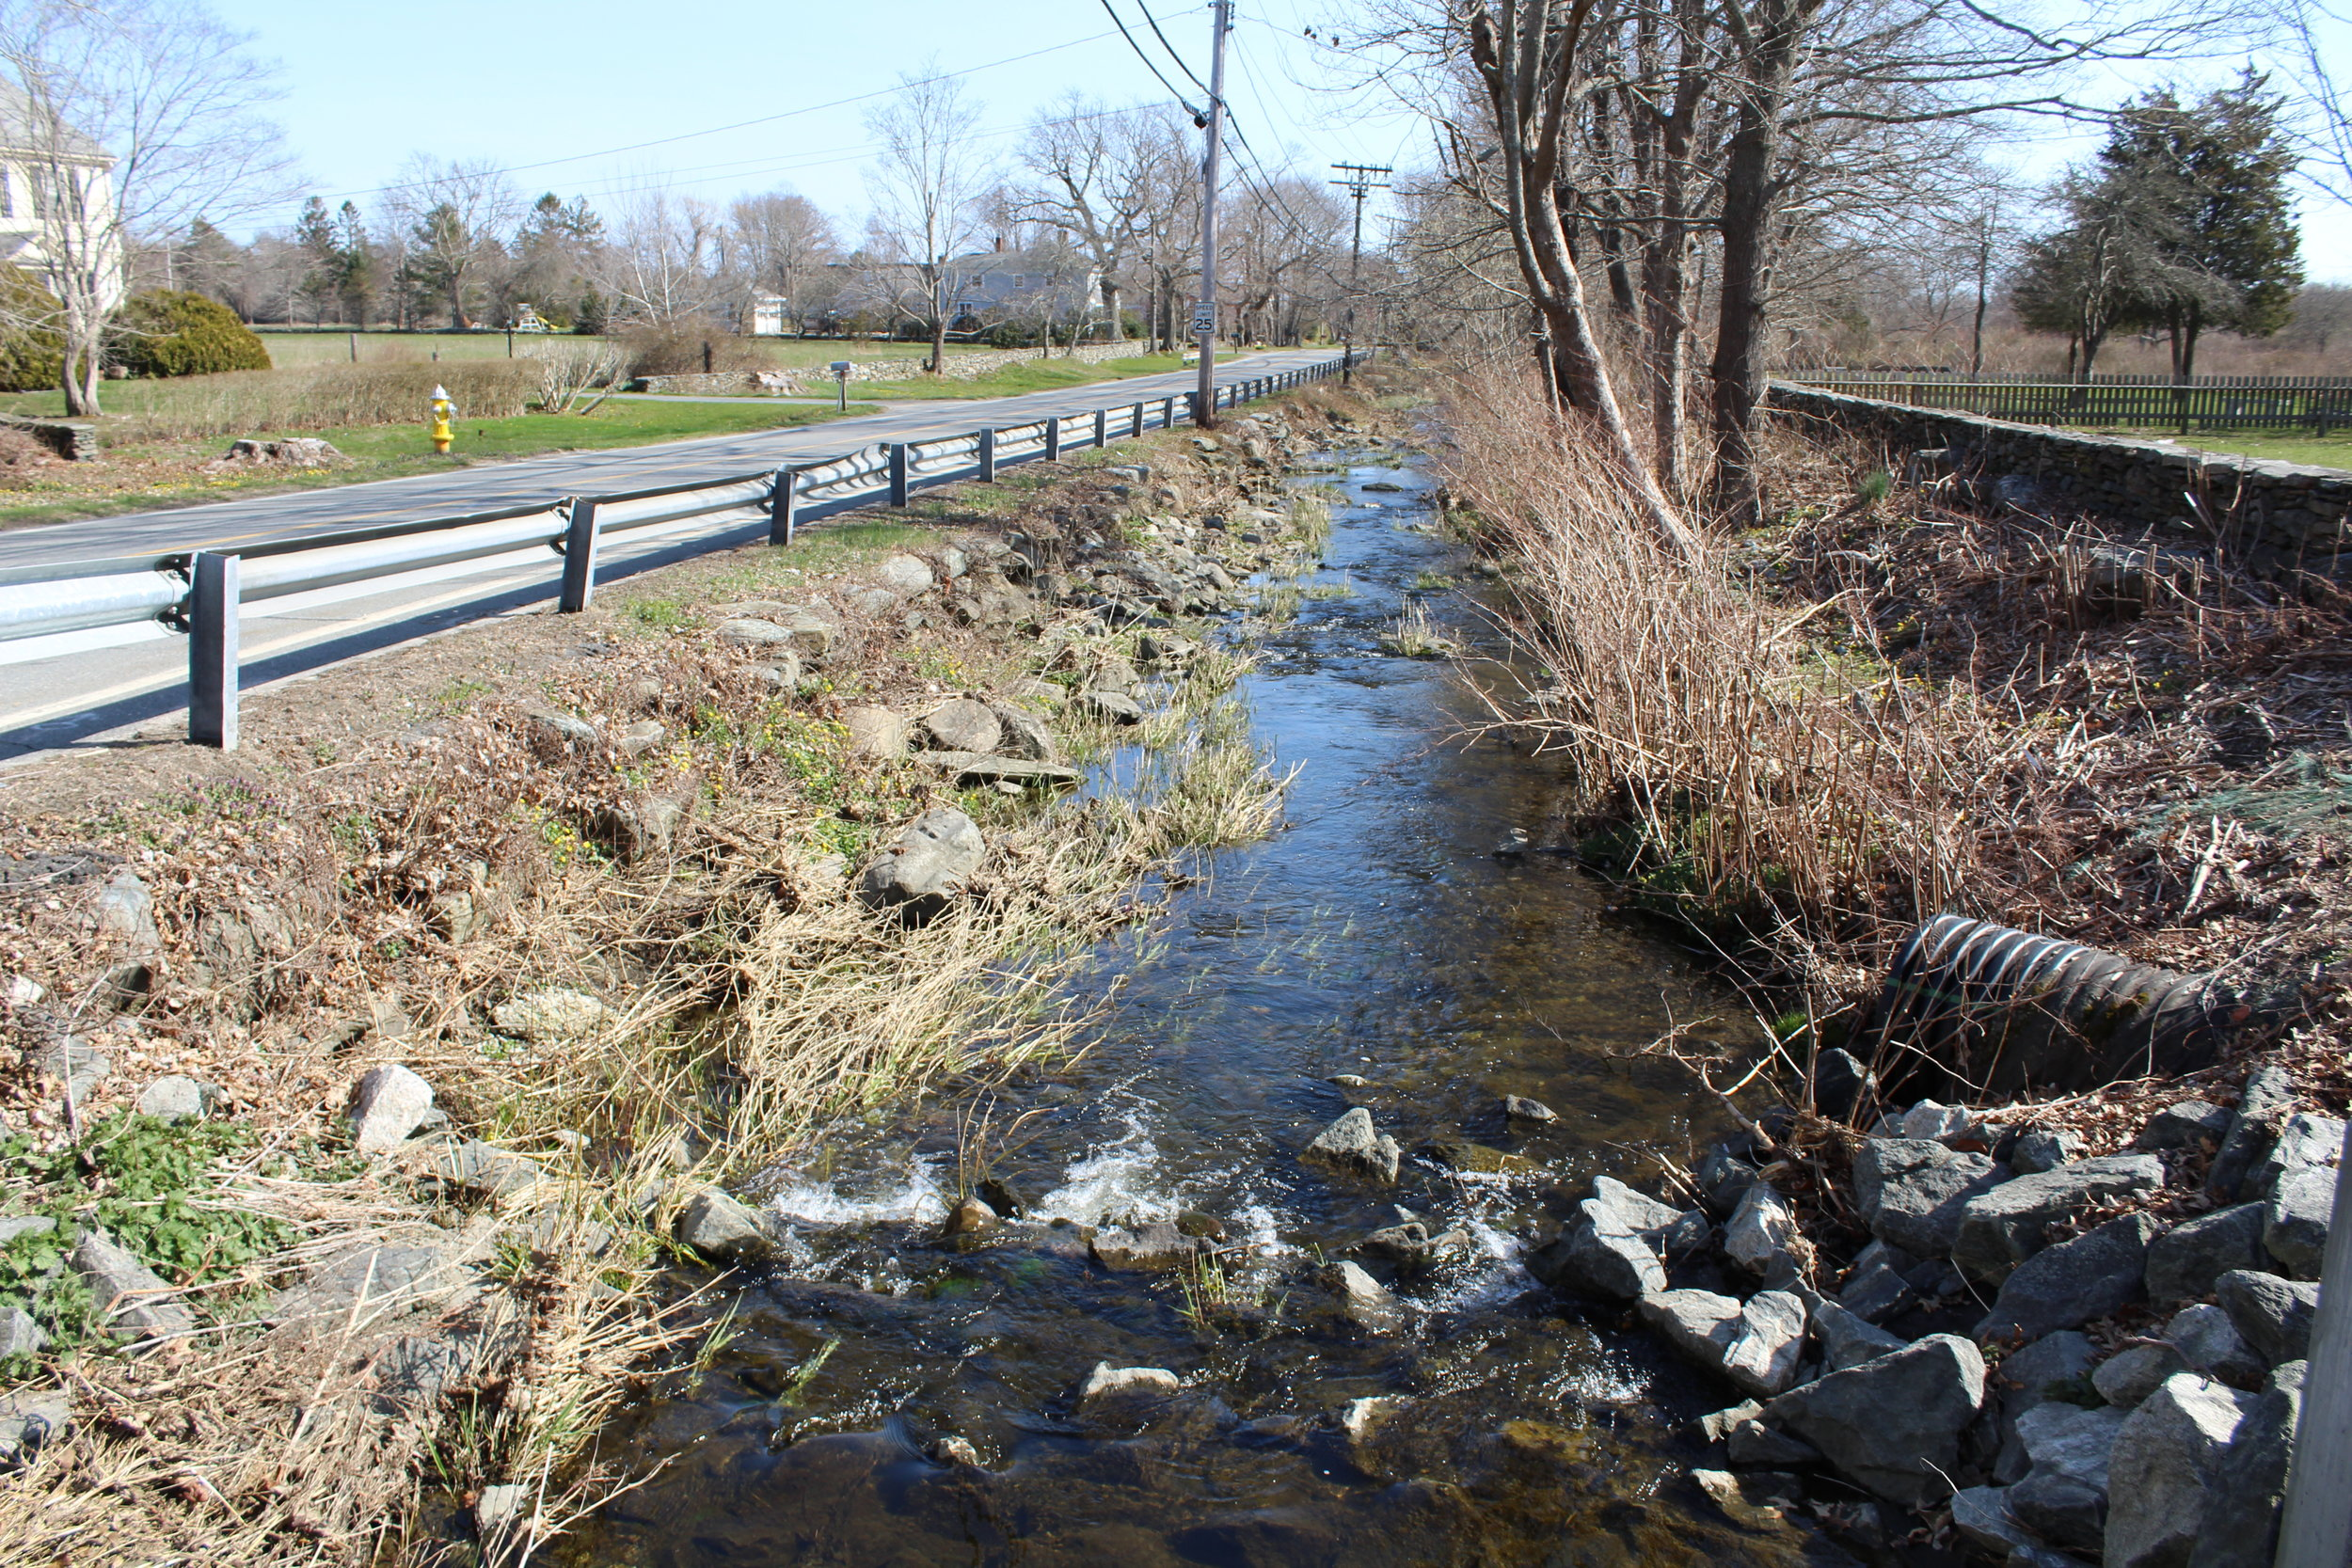 The Maidford River is the principal source of water to Nelson Pond and Gardiner Pond, which are drinking water supplies for the City of Newport Water Division. Both the Maidford River and Paradise Brook are listed on the Impaired Waters List prepared by RIDEM.